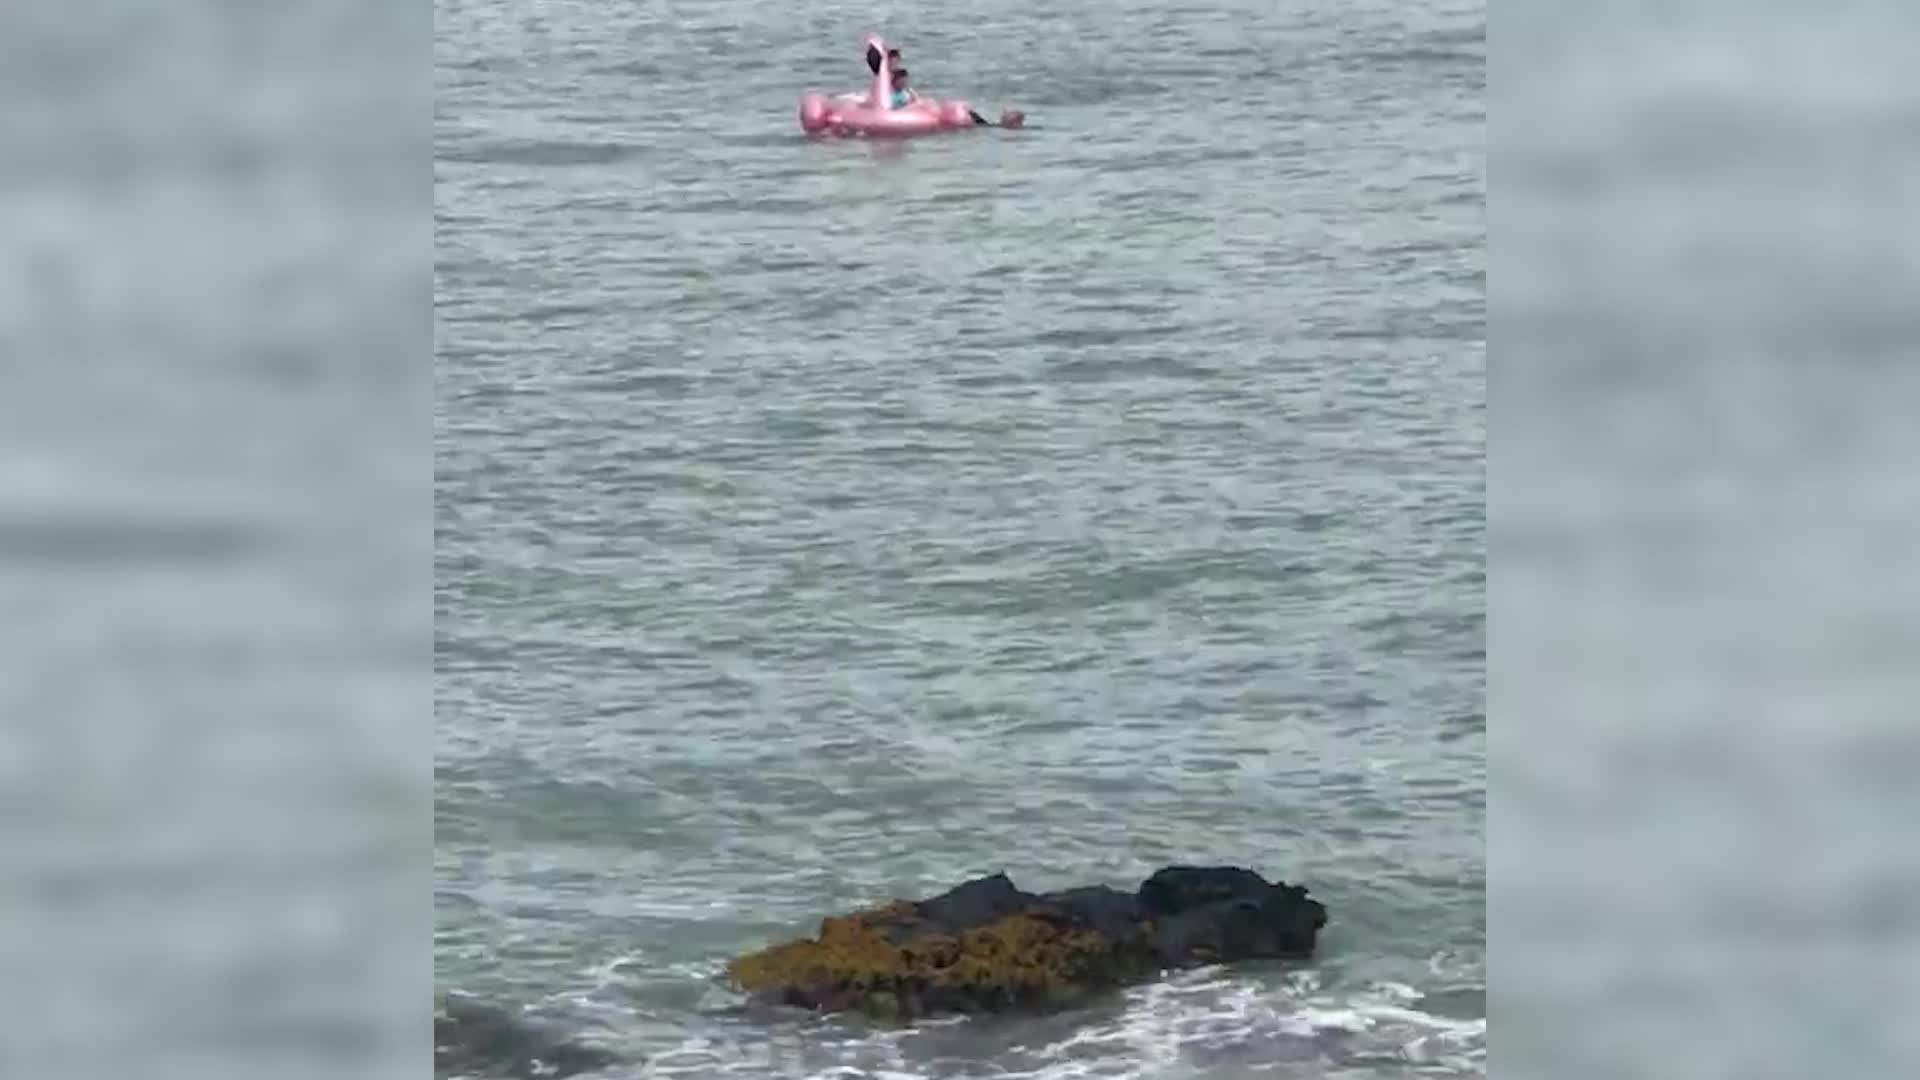 Good Samaritans saved two girls from a runaway raft off the coast of Dublin. The whole thing is a harrowing reminder of why those giant inflatables are best left off the beach.